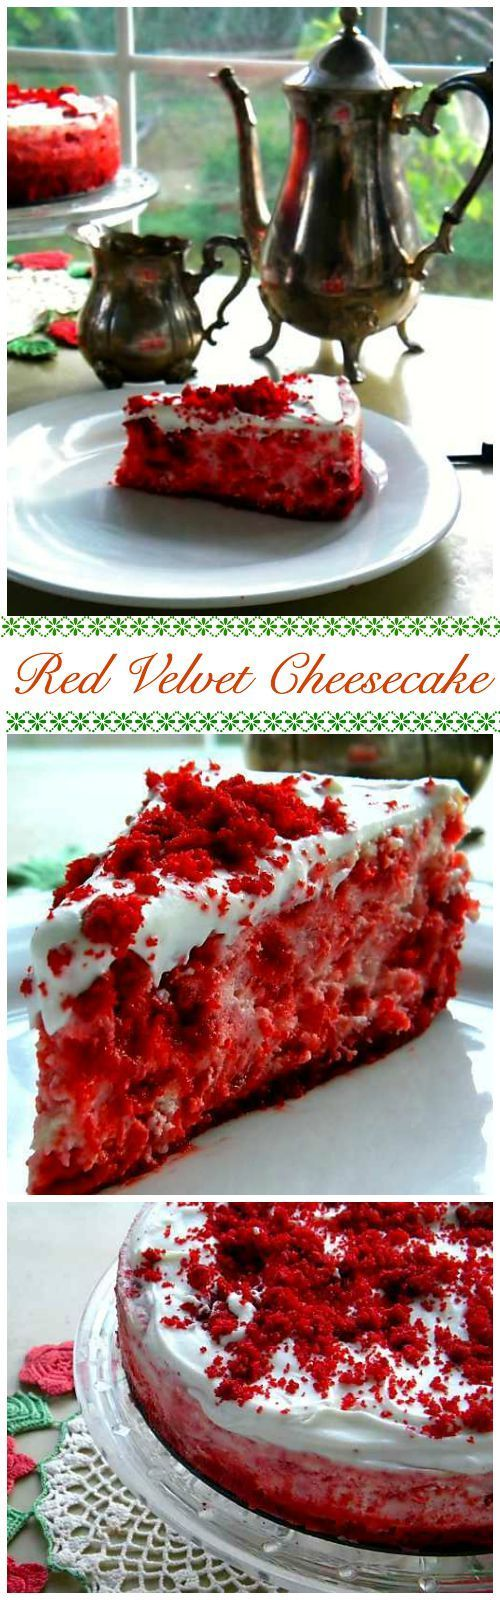 Uniquely beautiful, this Red Velvet Cheesecake is creamy and rich with lots of that yummy red velvet flavor. Pieces of tender red velvet cake are surrounded by melt in your mouth vanilla cheesecake. So unbelievably good! From RestlessChipotle.com